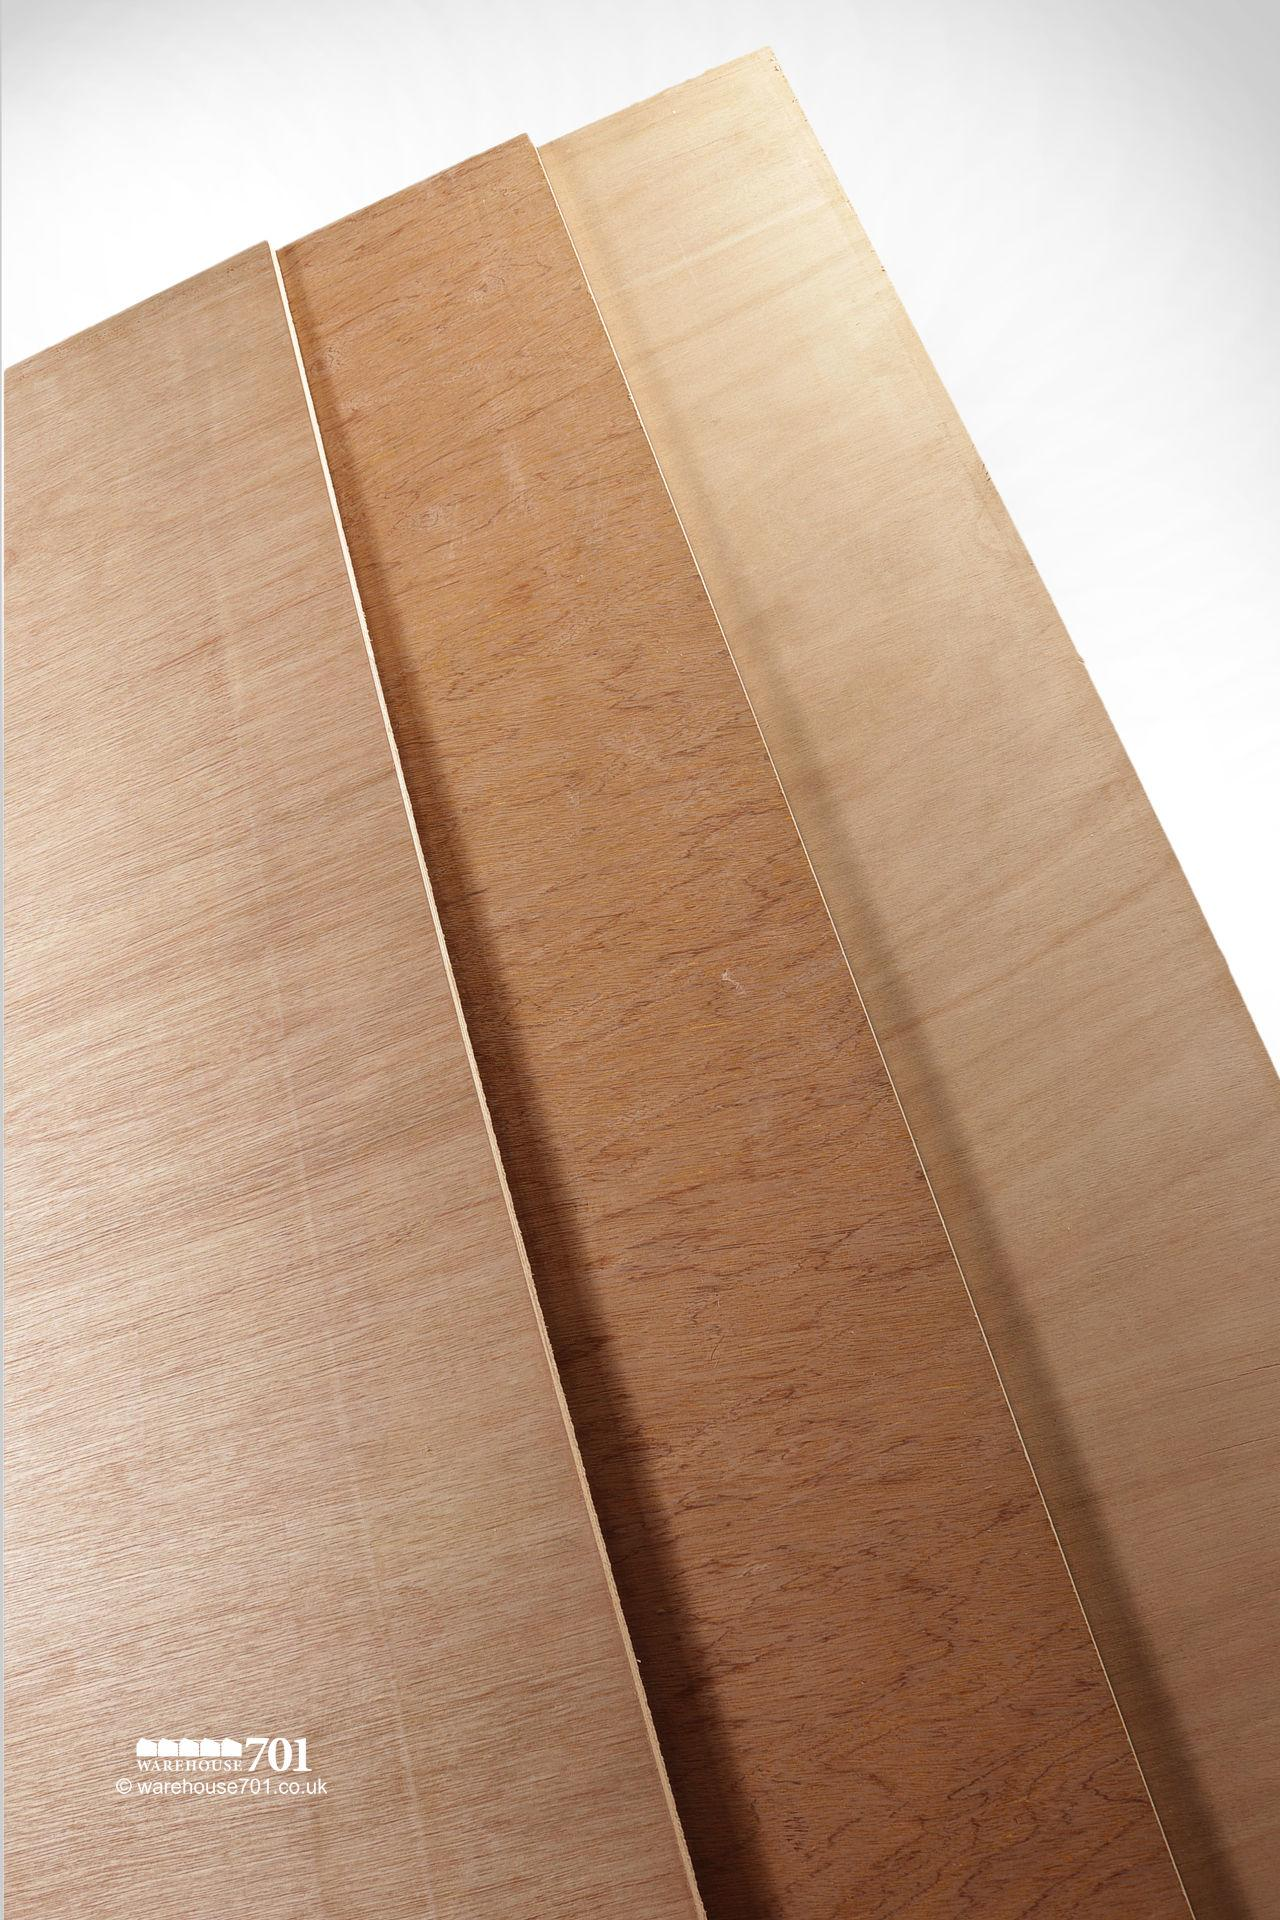 New Xtraplex® HARDWOOD Plywood sheet in 9mm, 12mm and 18mm